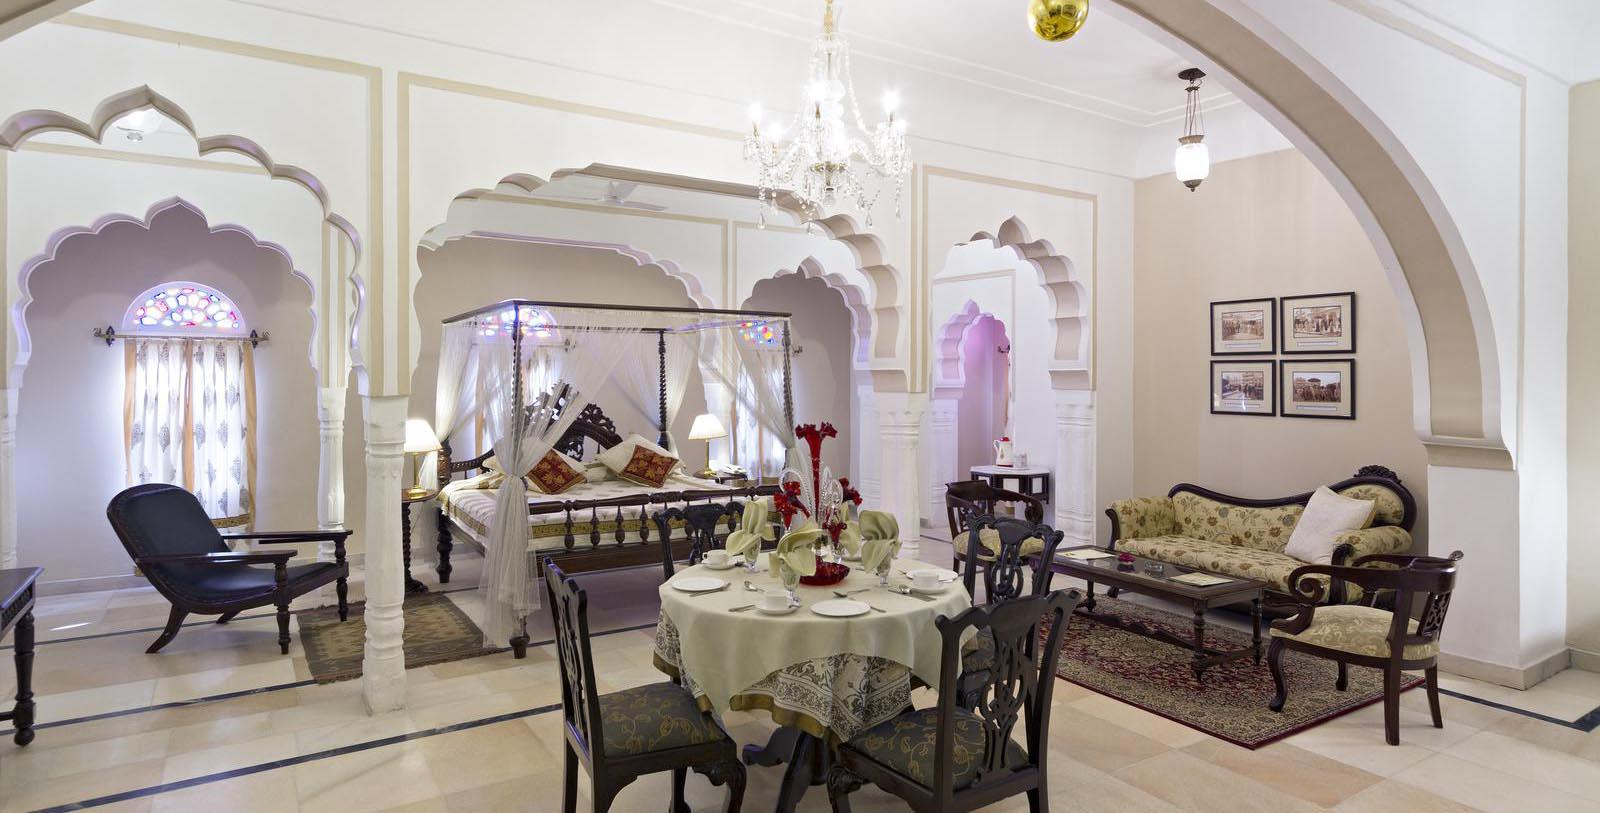 Image of guestroom suite Alsisar Mahal, 1800s, Member of Historic Hotels Worldwide, in Jhunjhunu, India, Accommodations